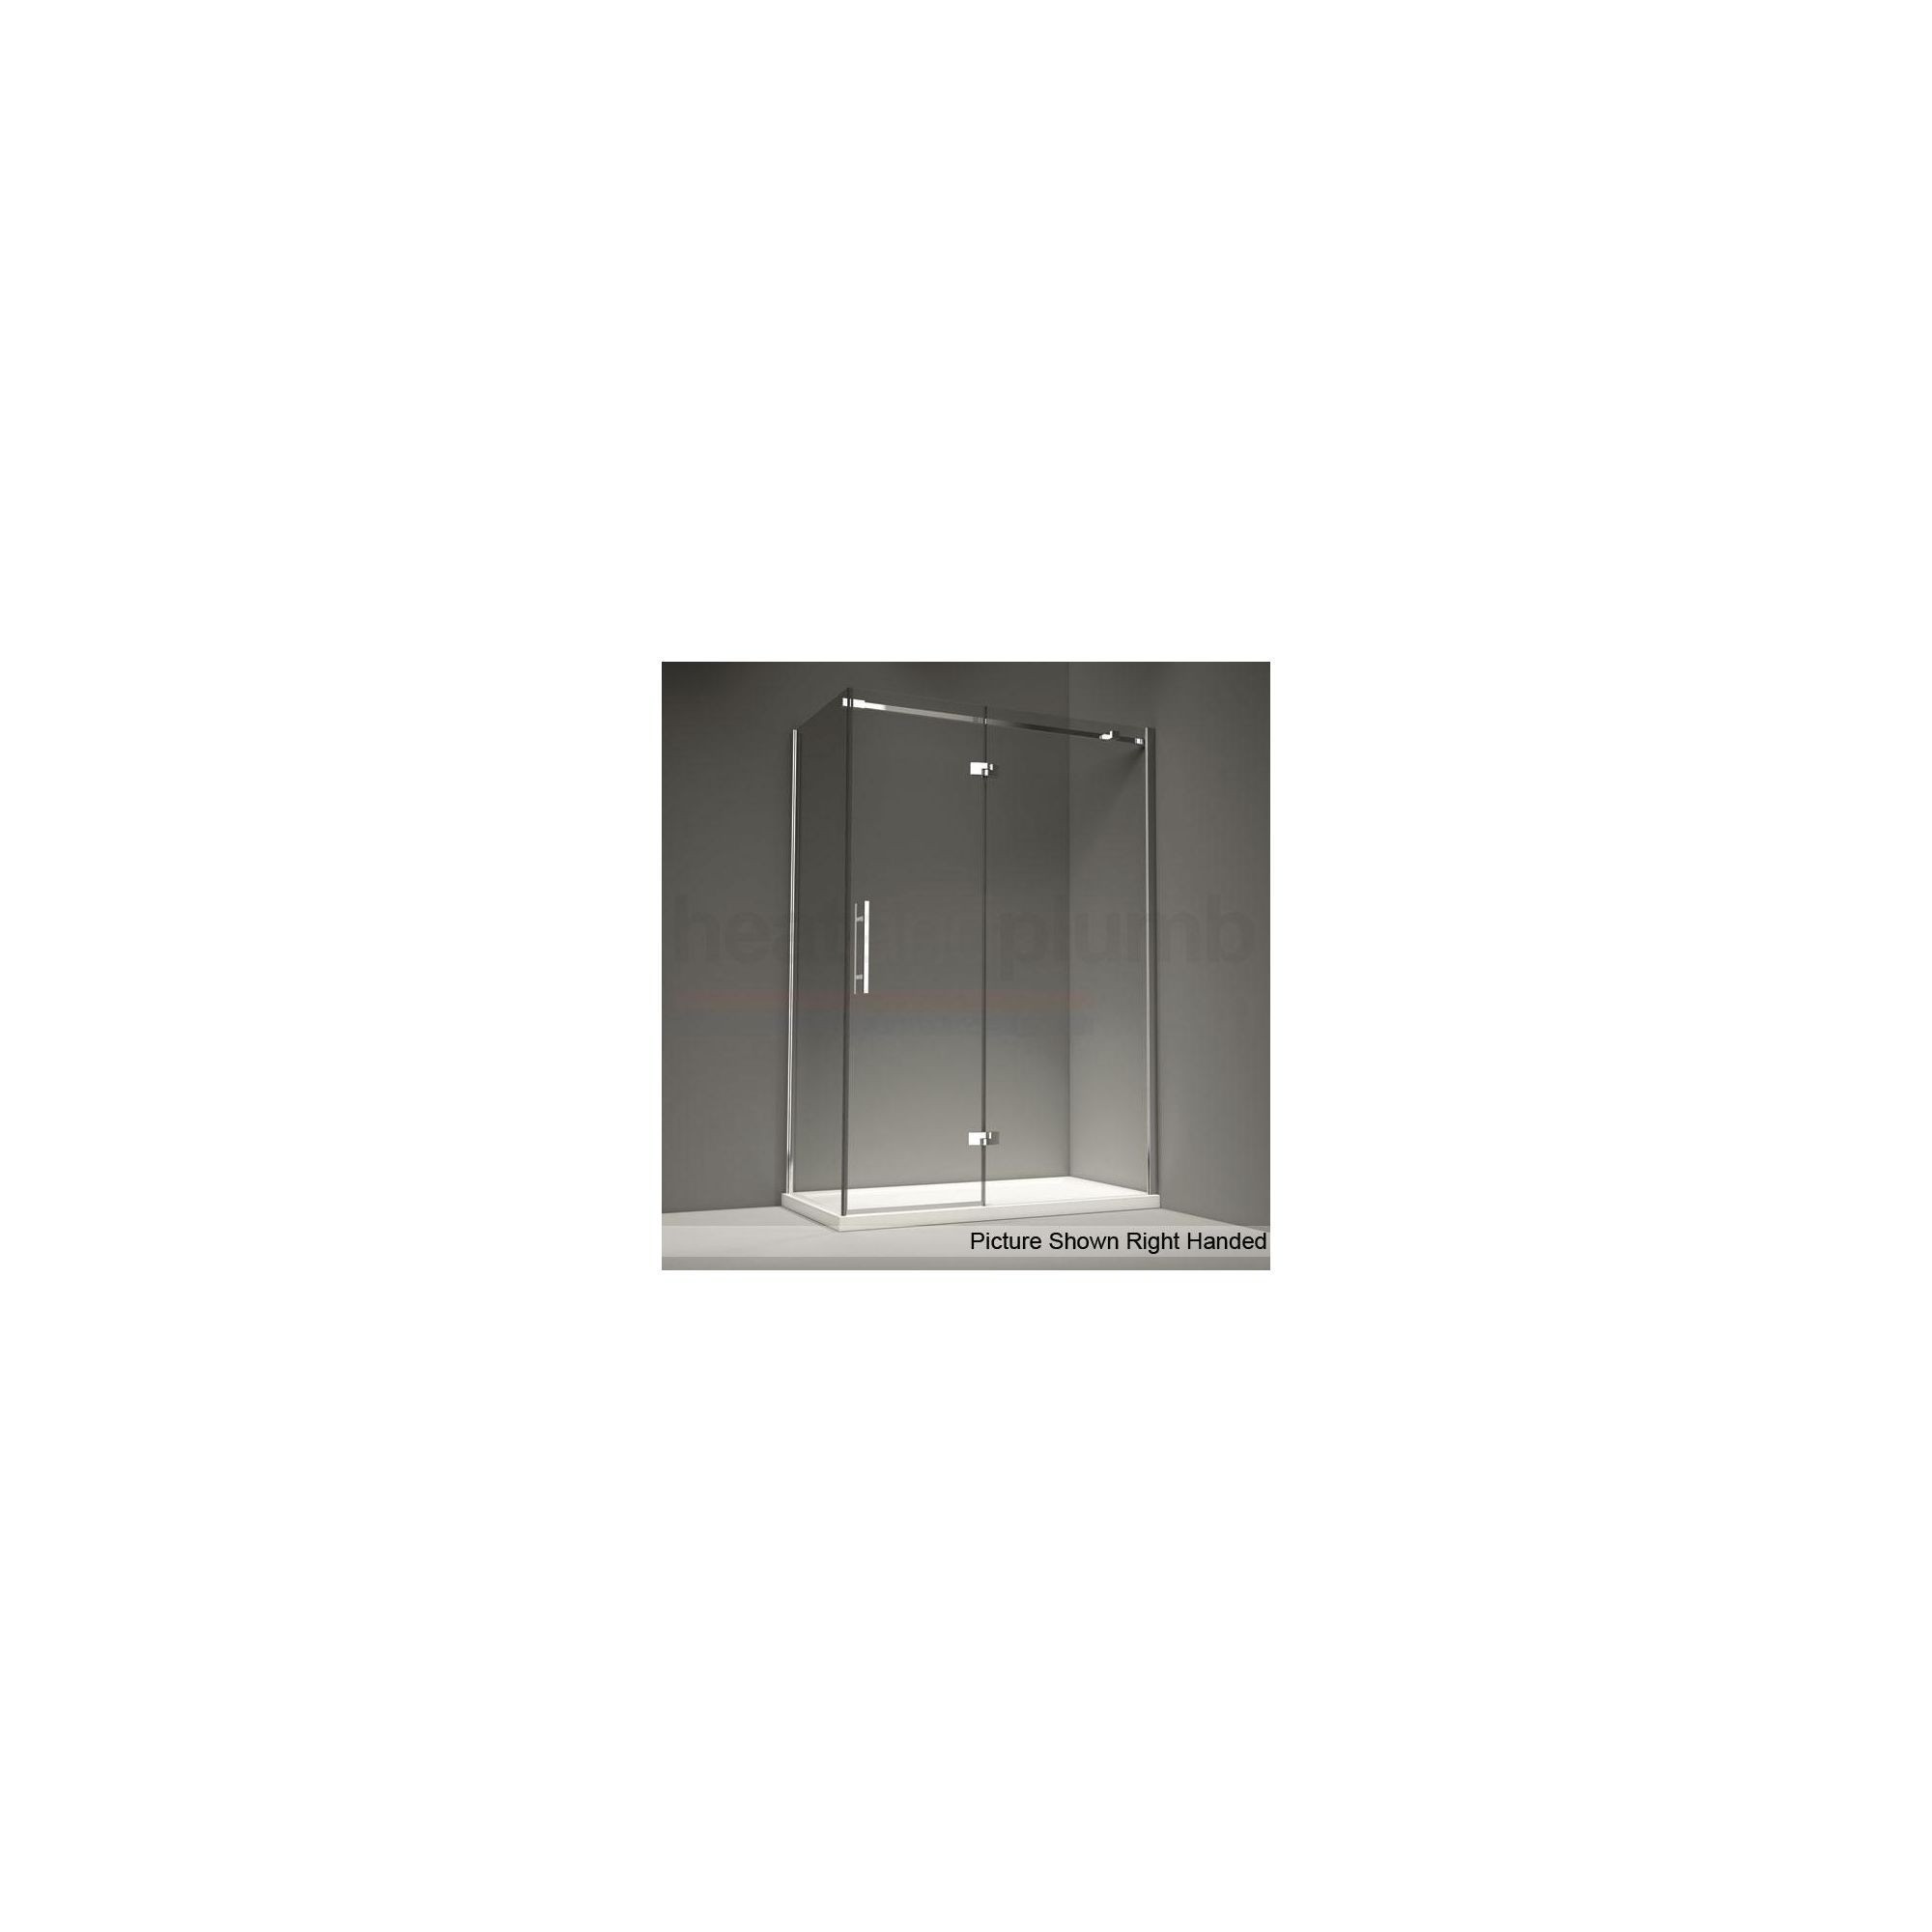 Merlyn Series 9 Inline Hinged Door Shower Enclosure, 1100mm x 800mm, Low Profile Tray, 8mm Glass at Tesco Direct